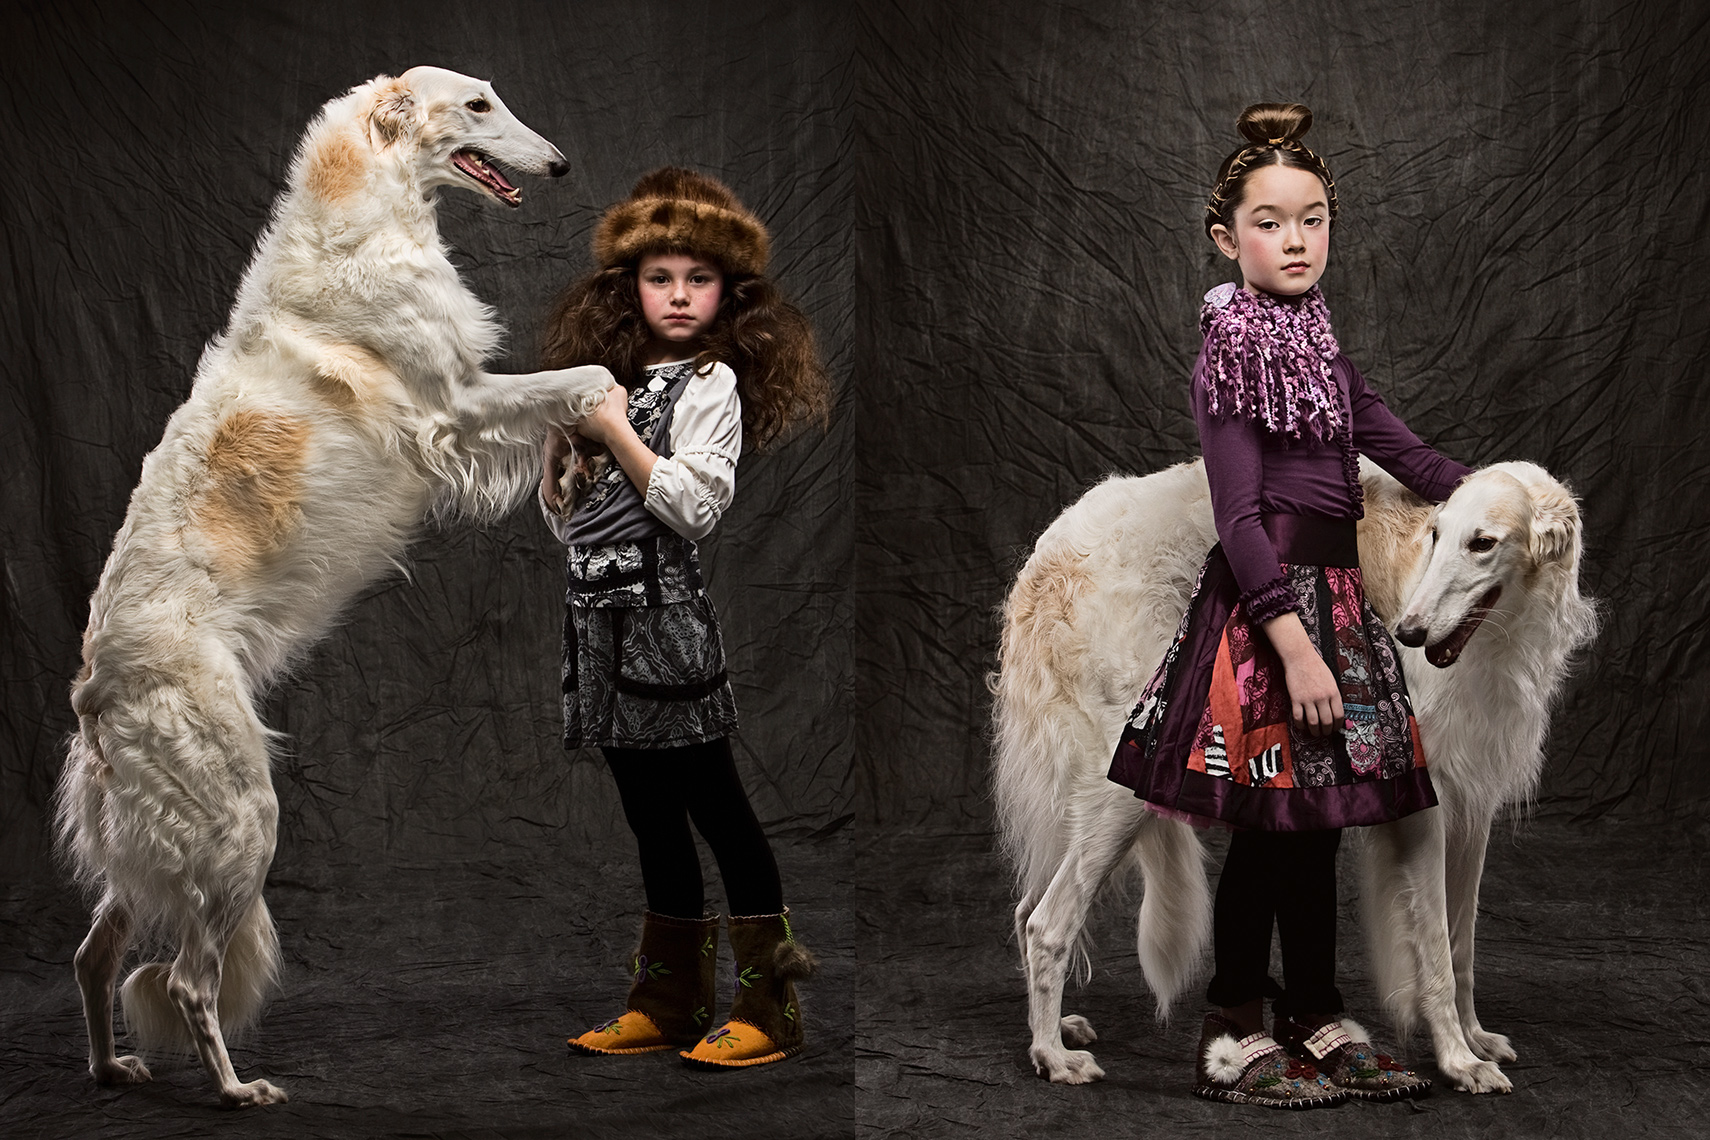 Borzoi, Michael Brian Kids Photography, Los Angeles, Earnshaws kids fashion, giant dog